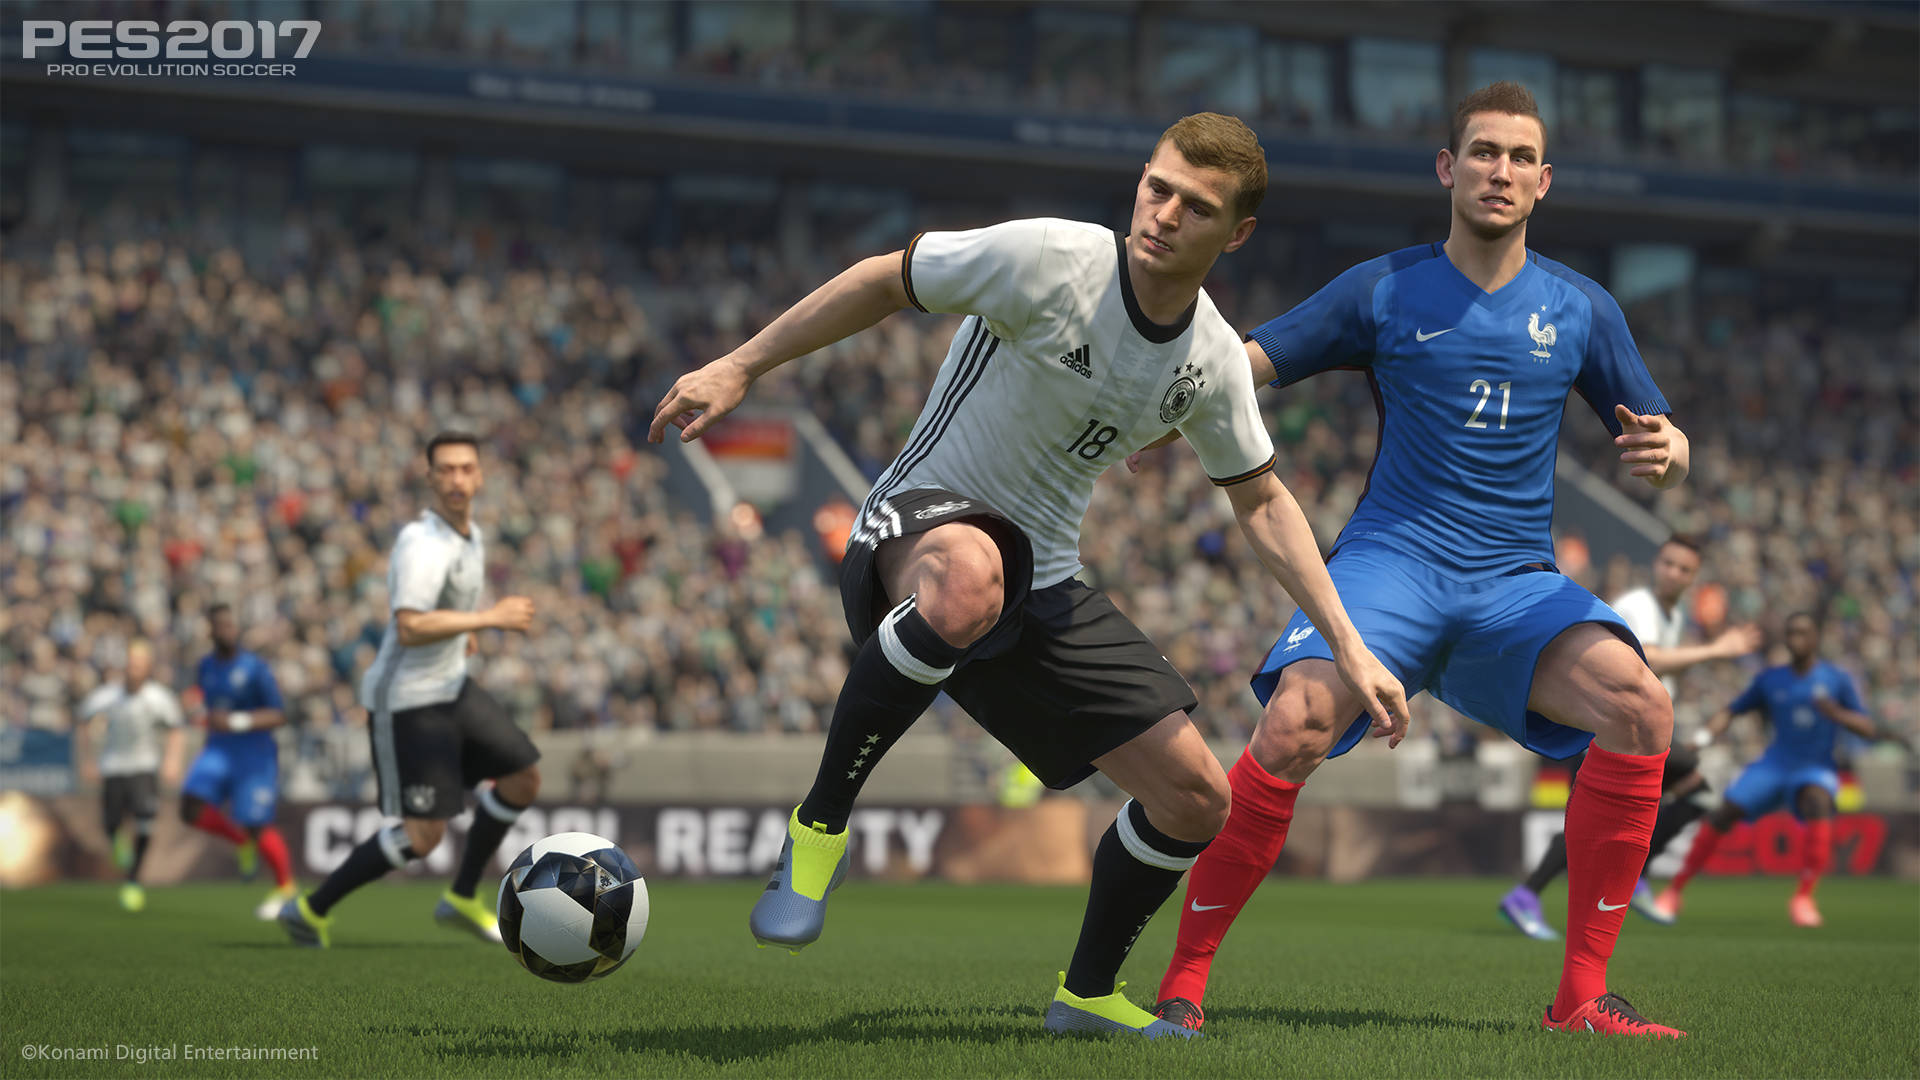 pes-2017-kroos-vs-francia-pes-kings-edition